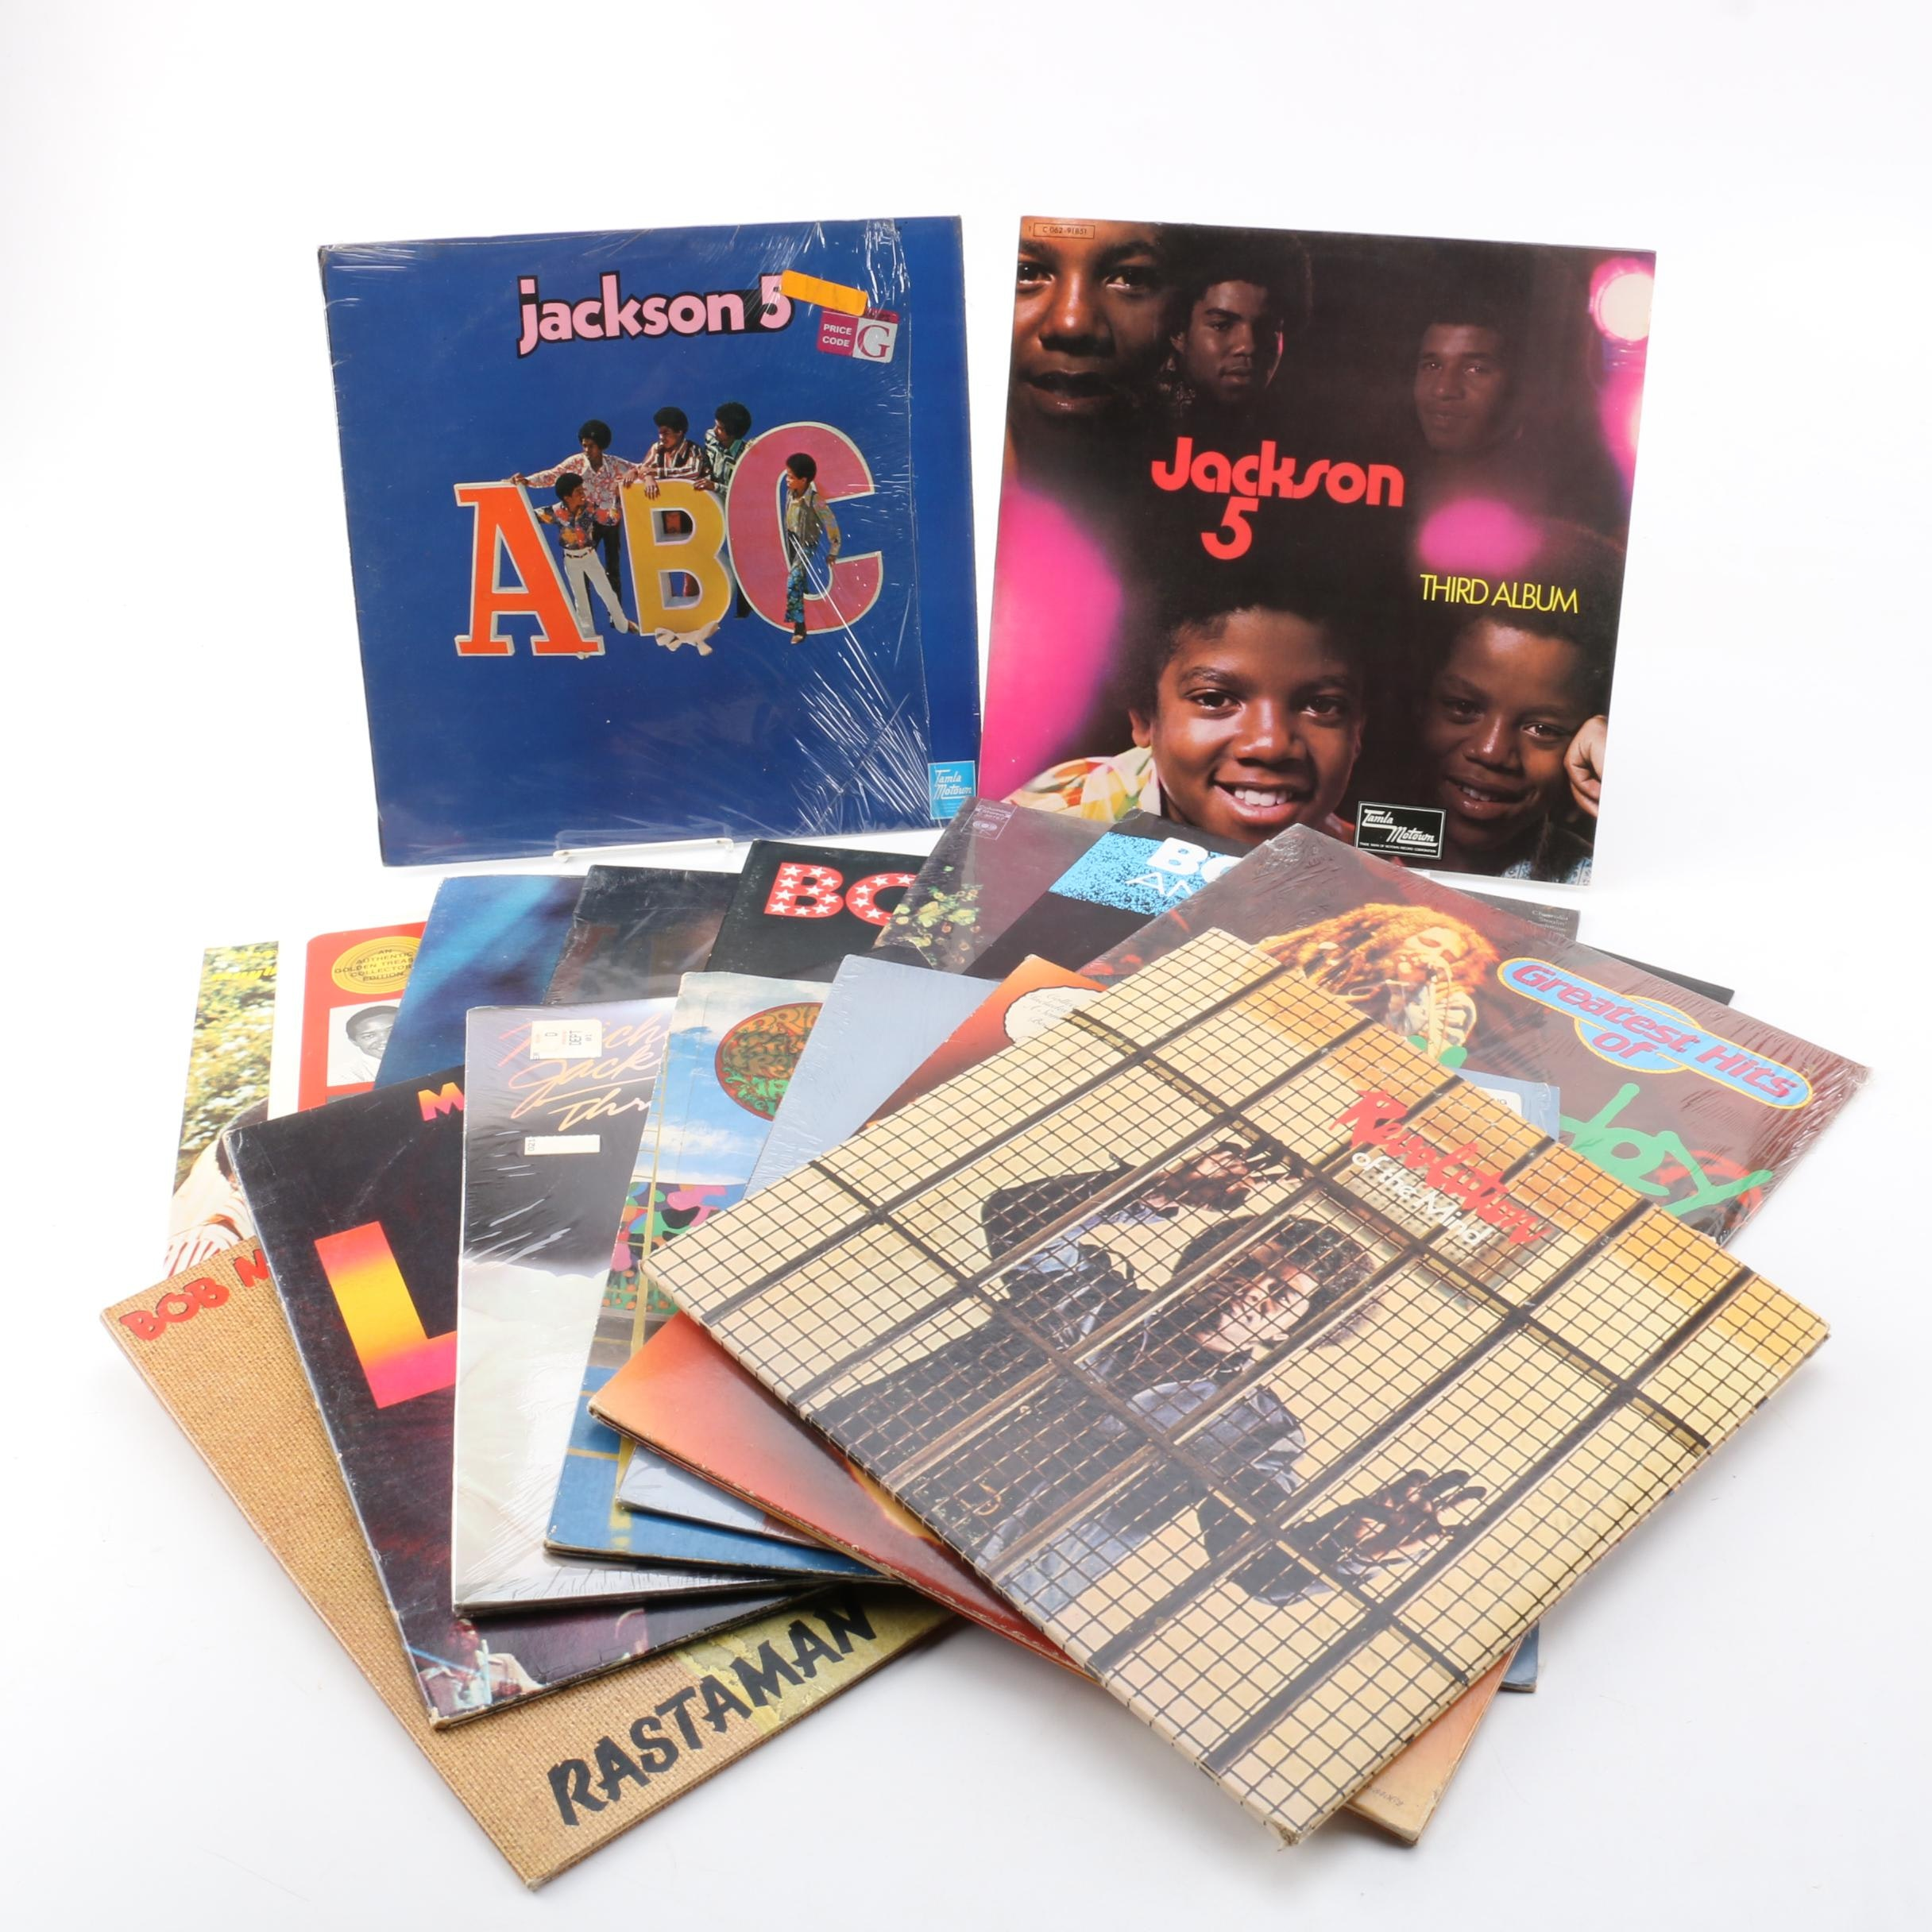 Prince, Jackson 5, Bob Marley, Sam Cooke, Taj Mahal, Bootsy Collins and More LPs